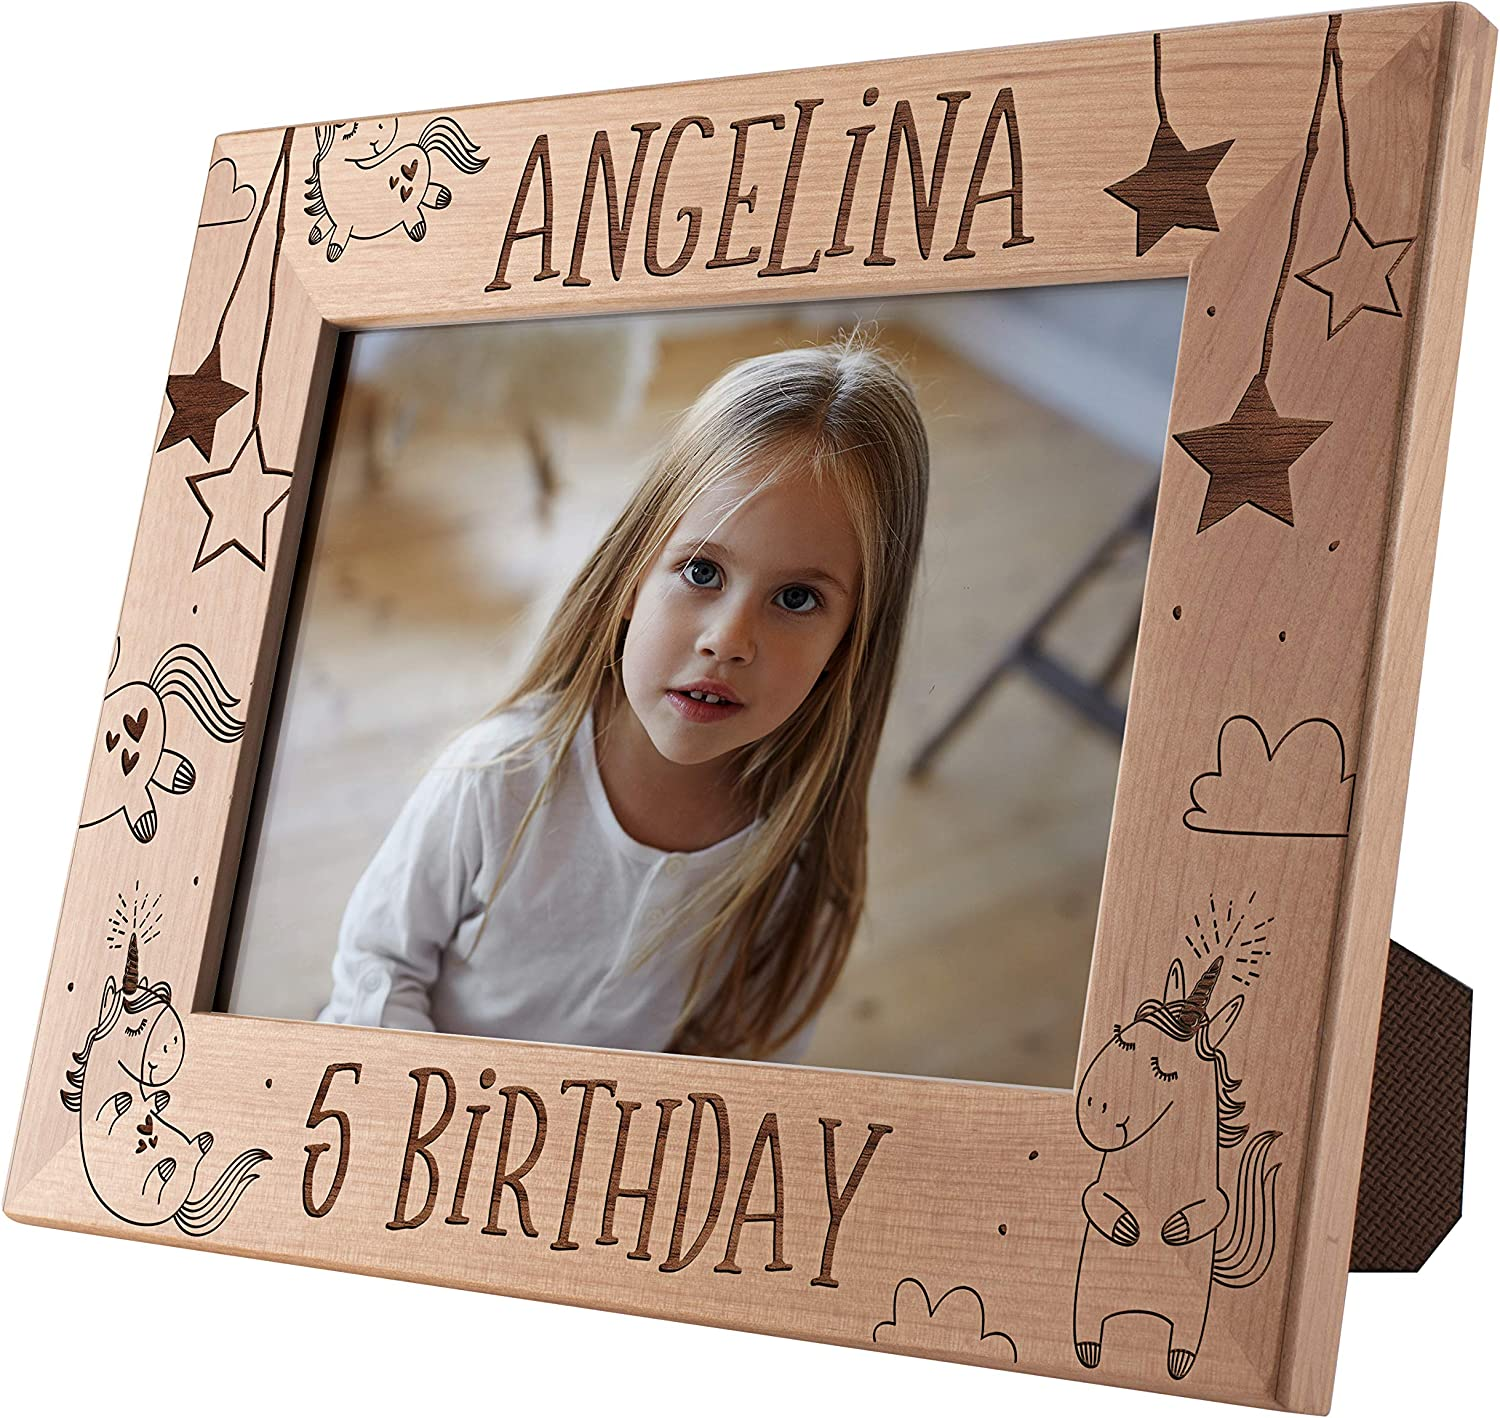 Birthday Picture 贈呈 Frame Personalized Engraved Custom Birt 5x7 配送員設置送料無料